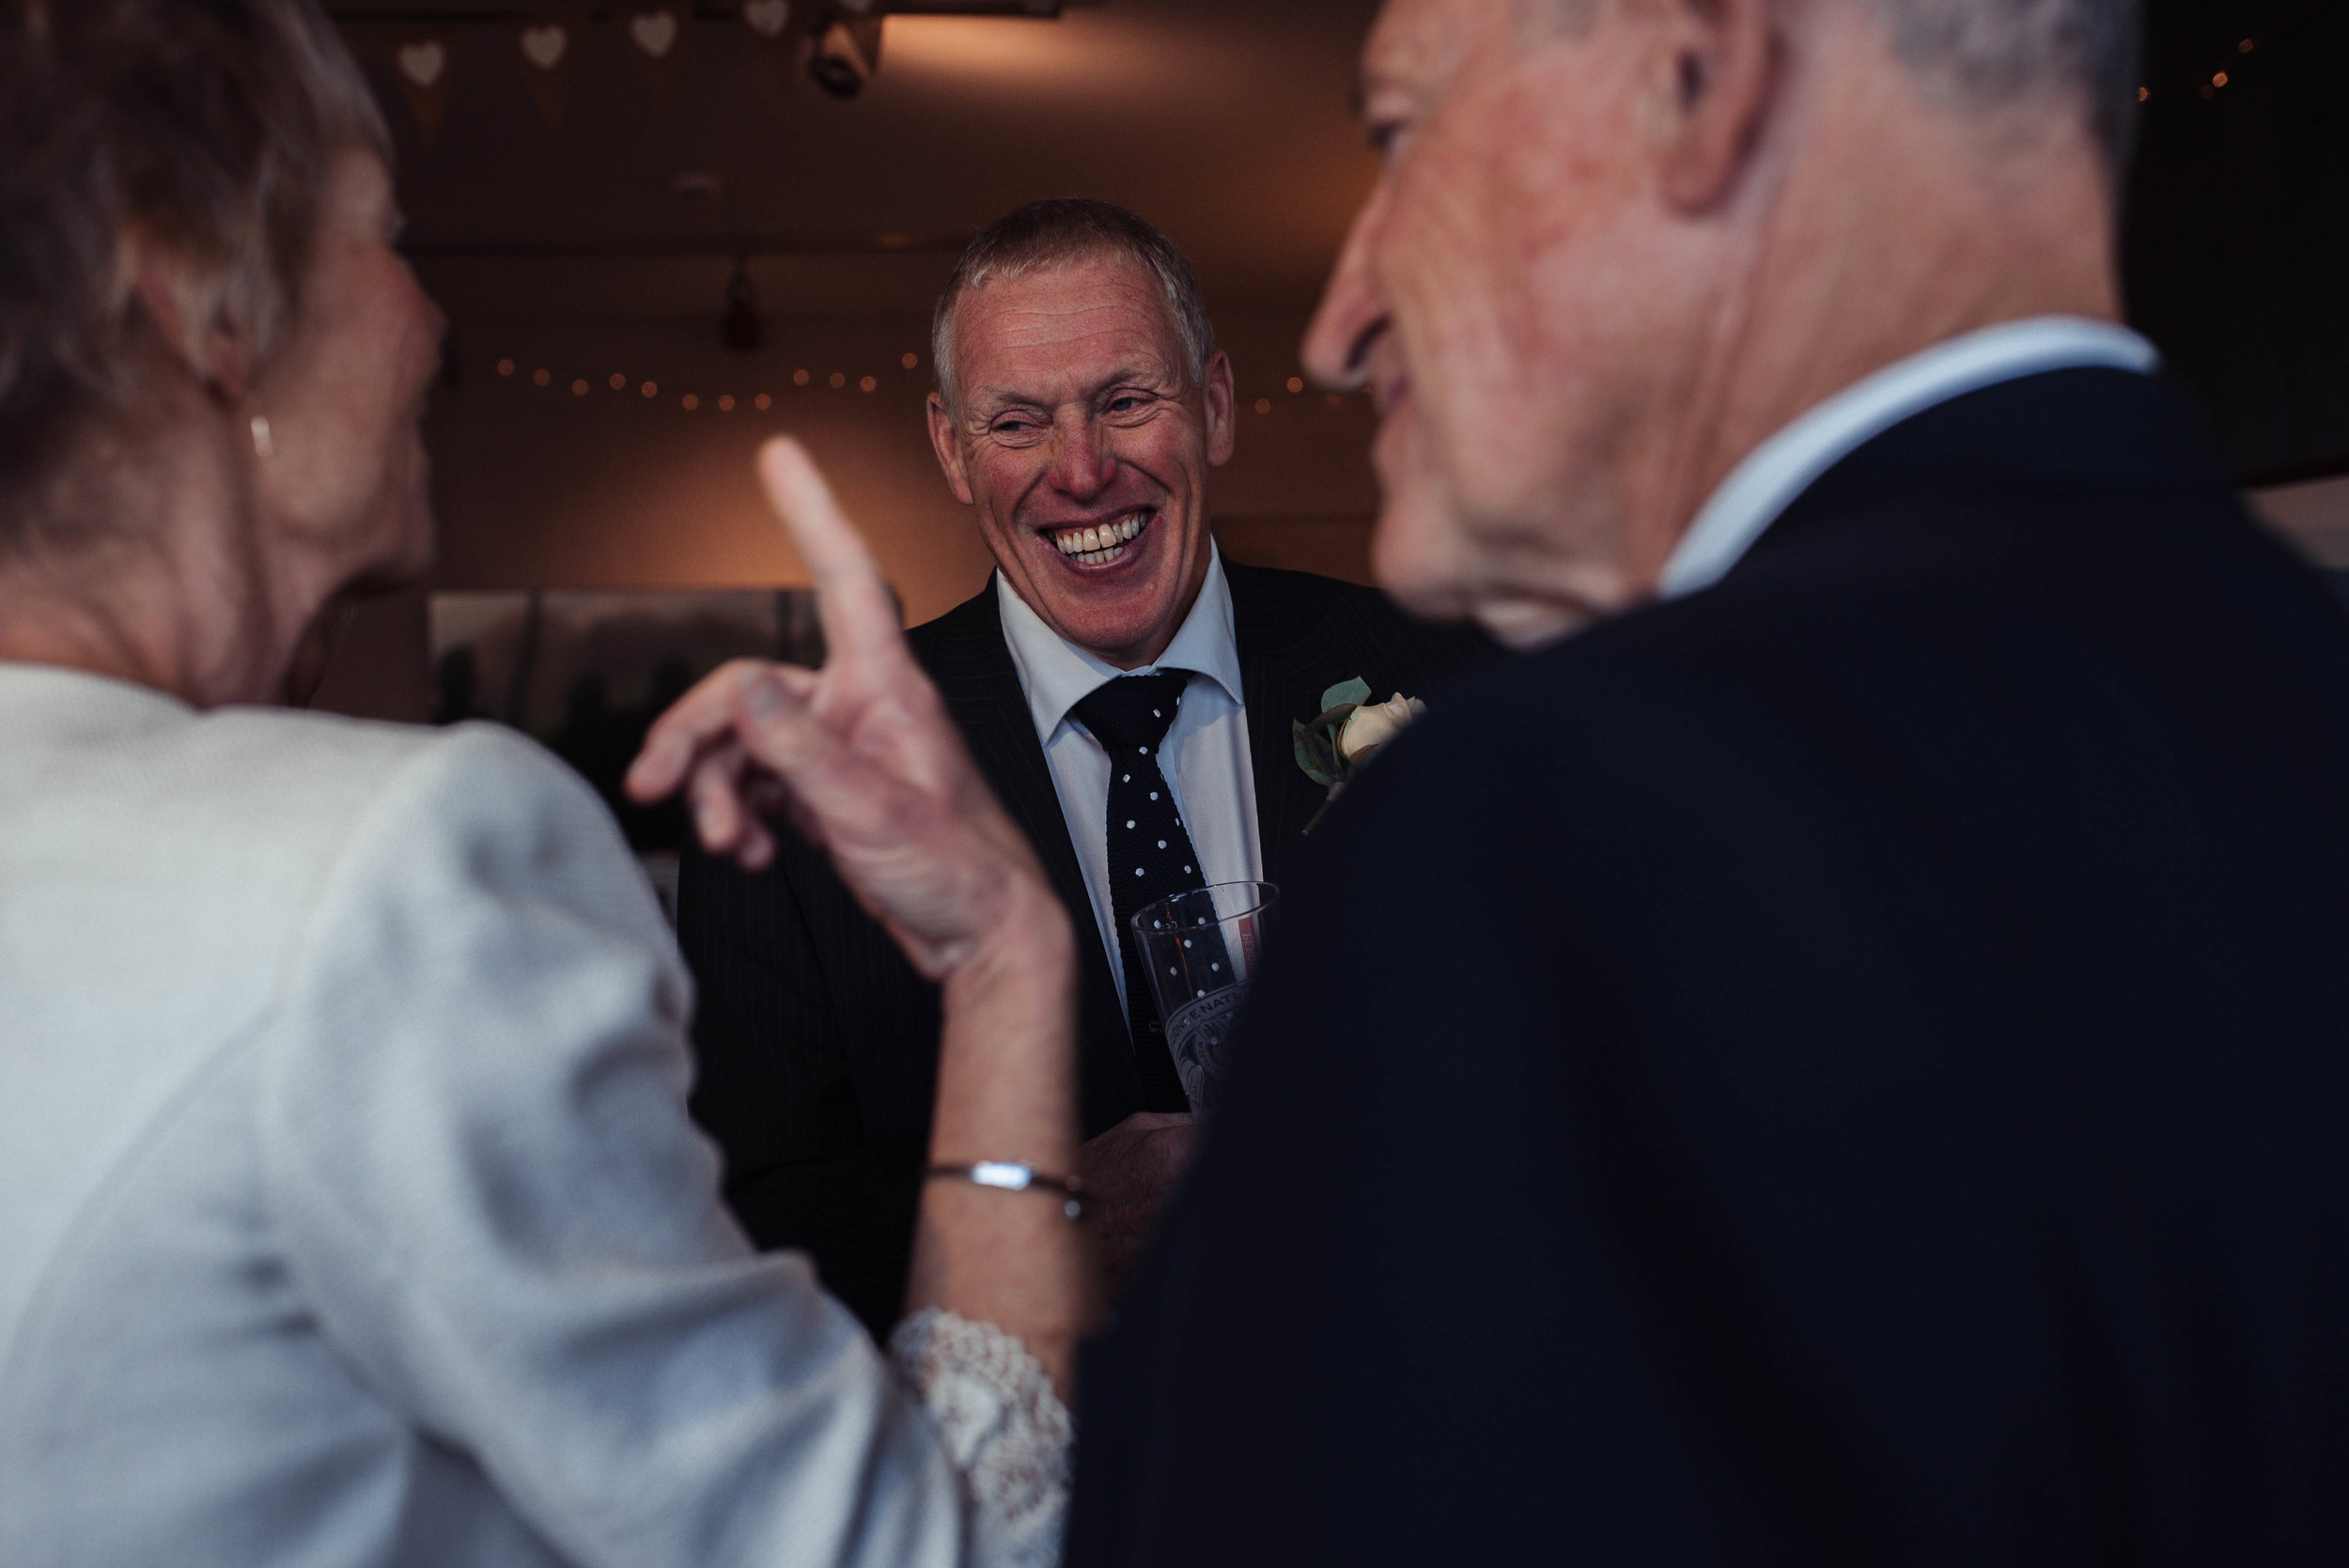 A wedding guest howls laughing